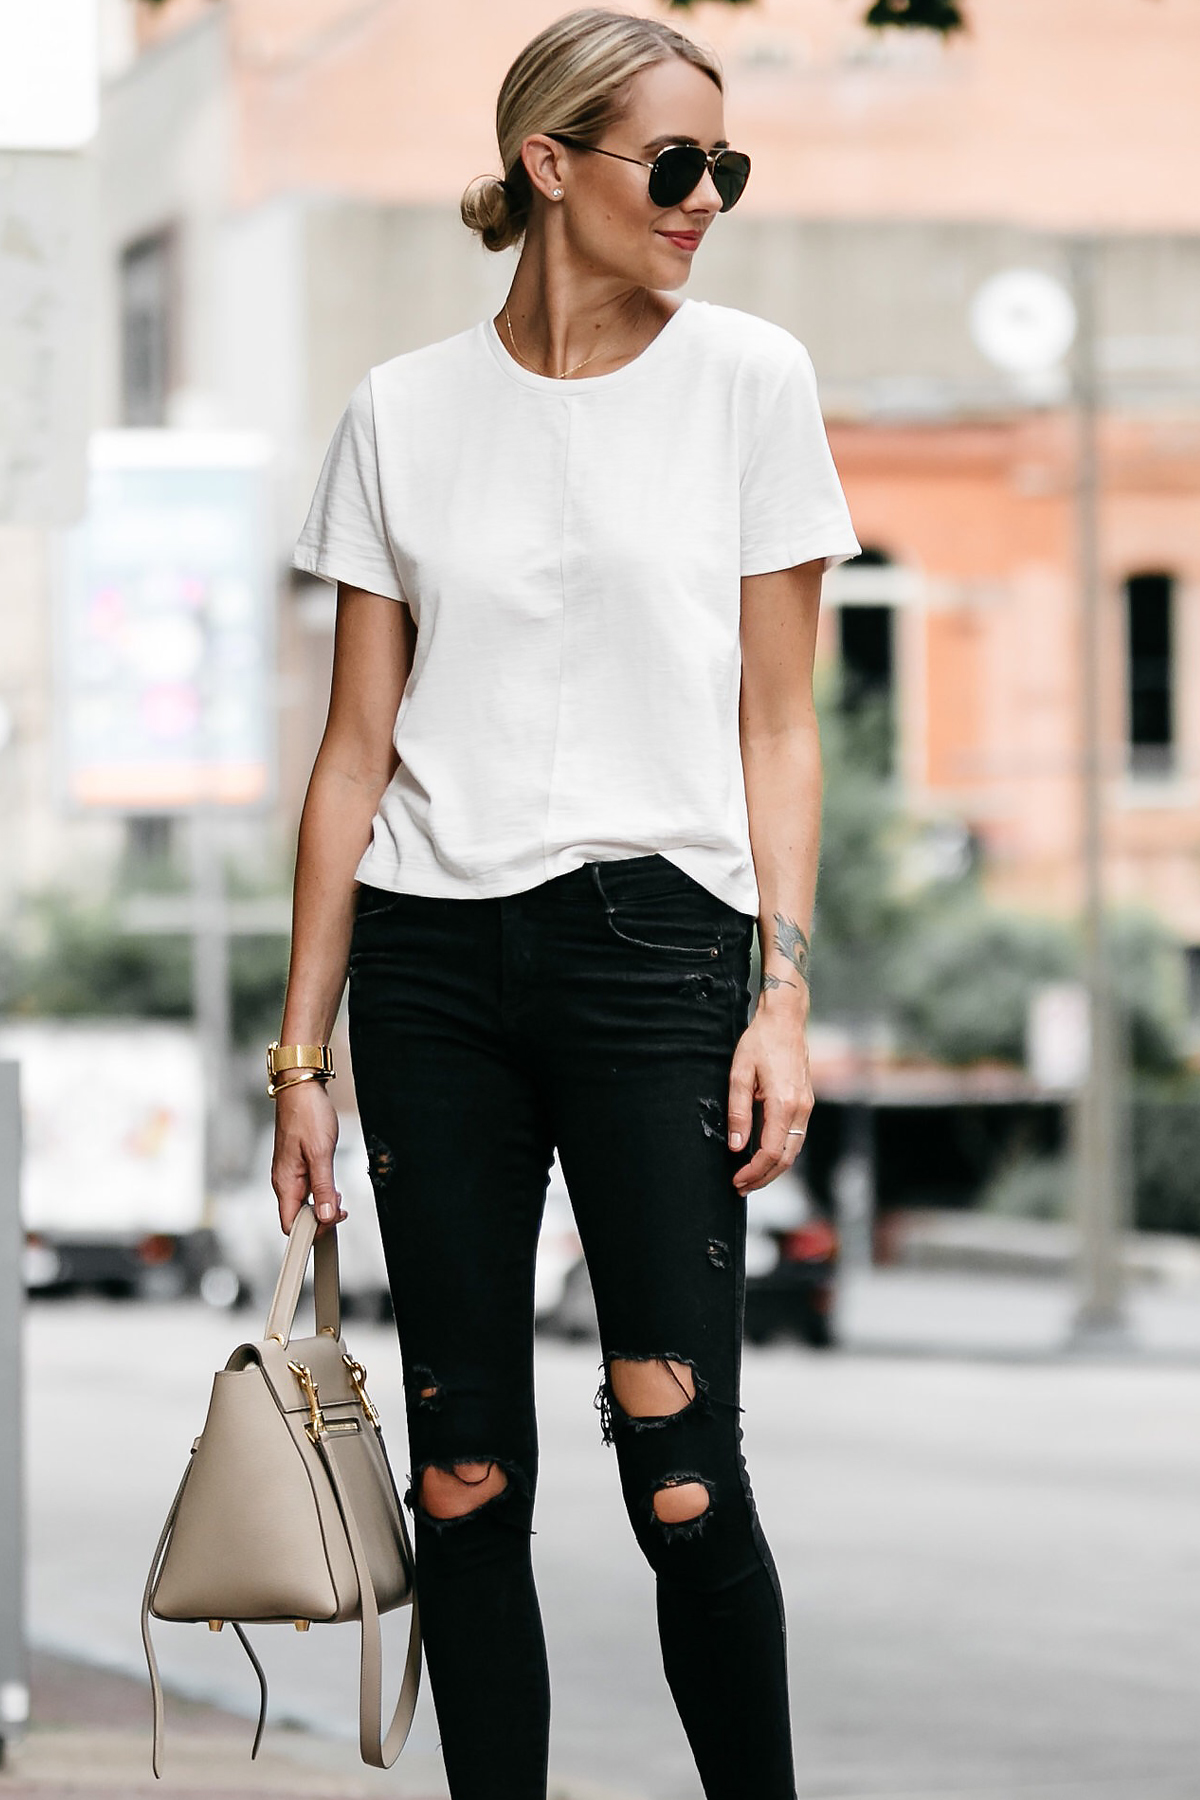 Blonde woman wearing everlane white tshirt zara black ripped skinny jeans outfit celine belt back street style dallas blogger fashion blogger